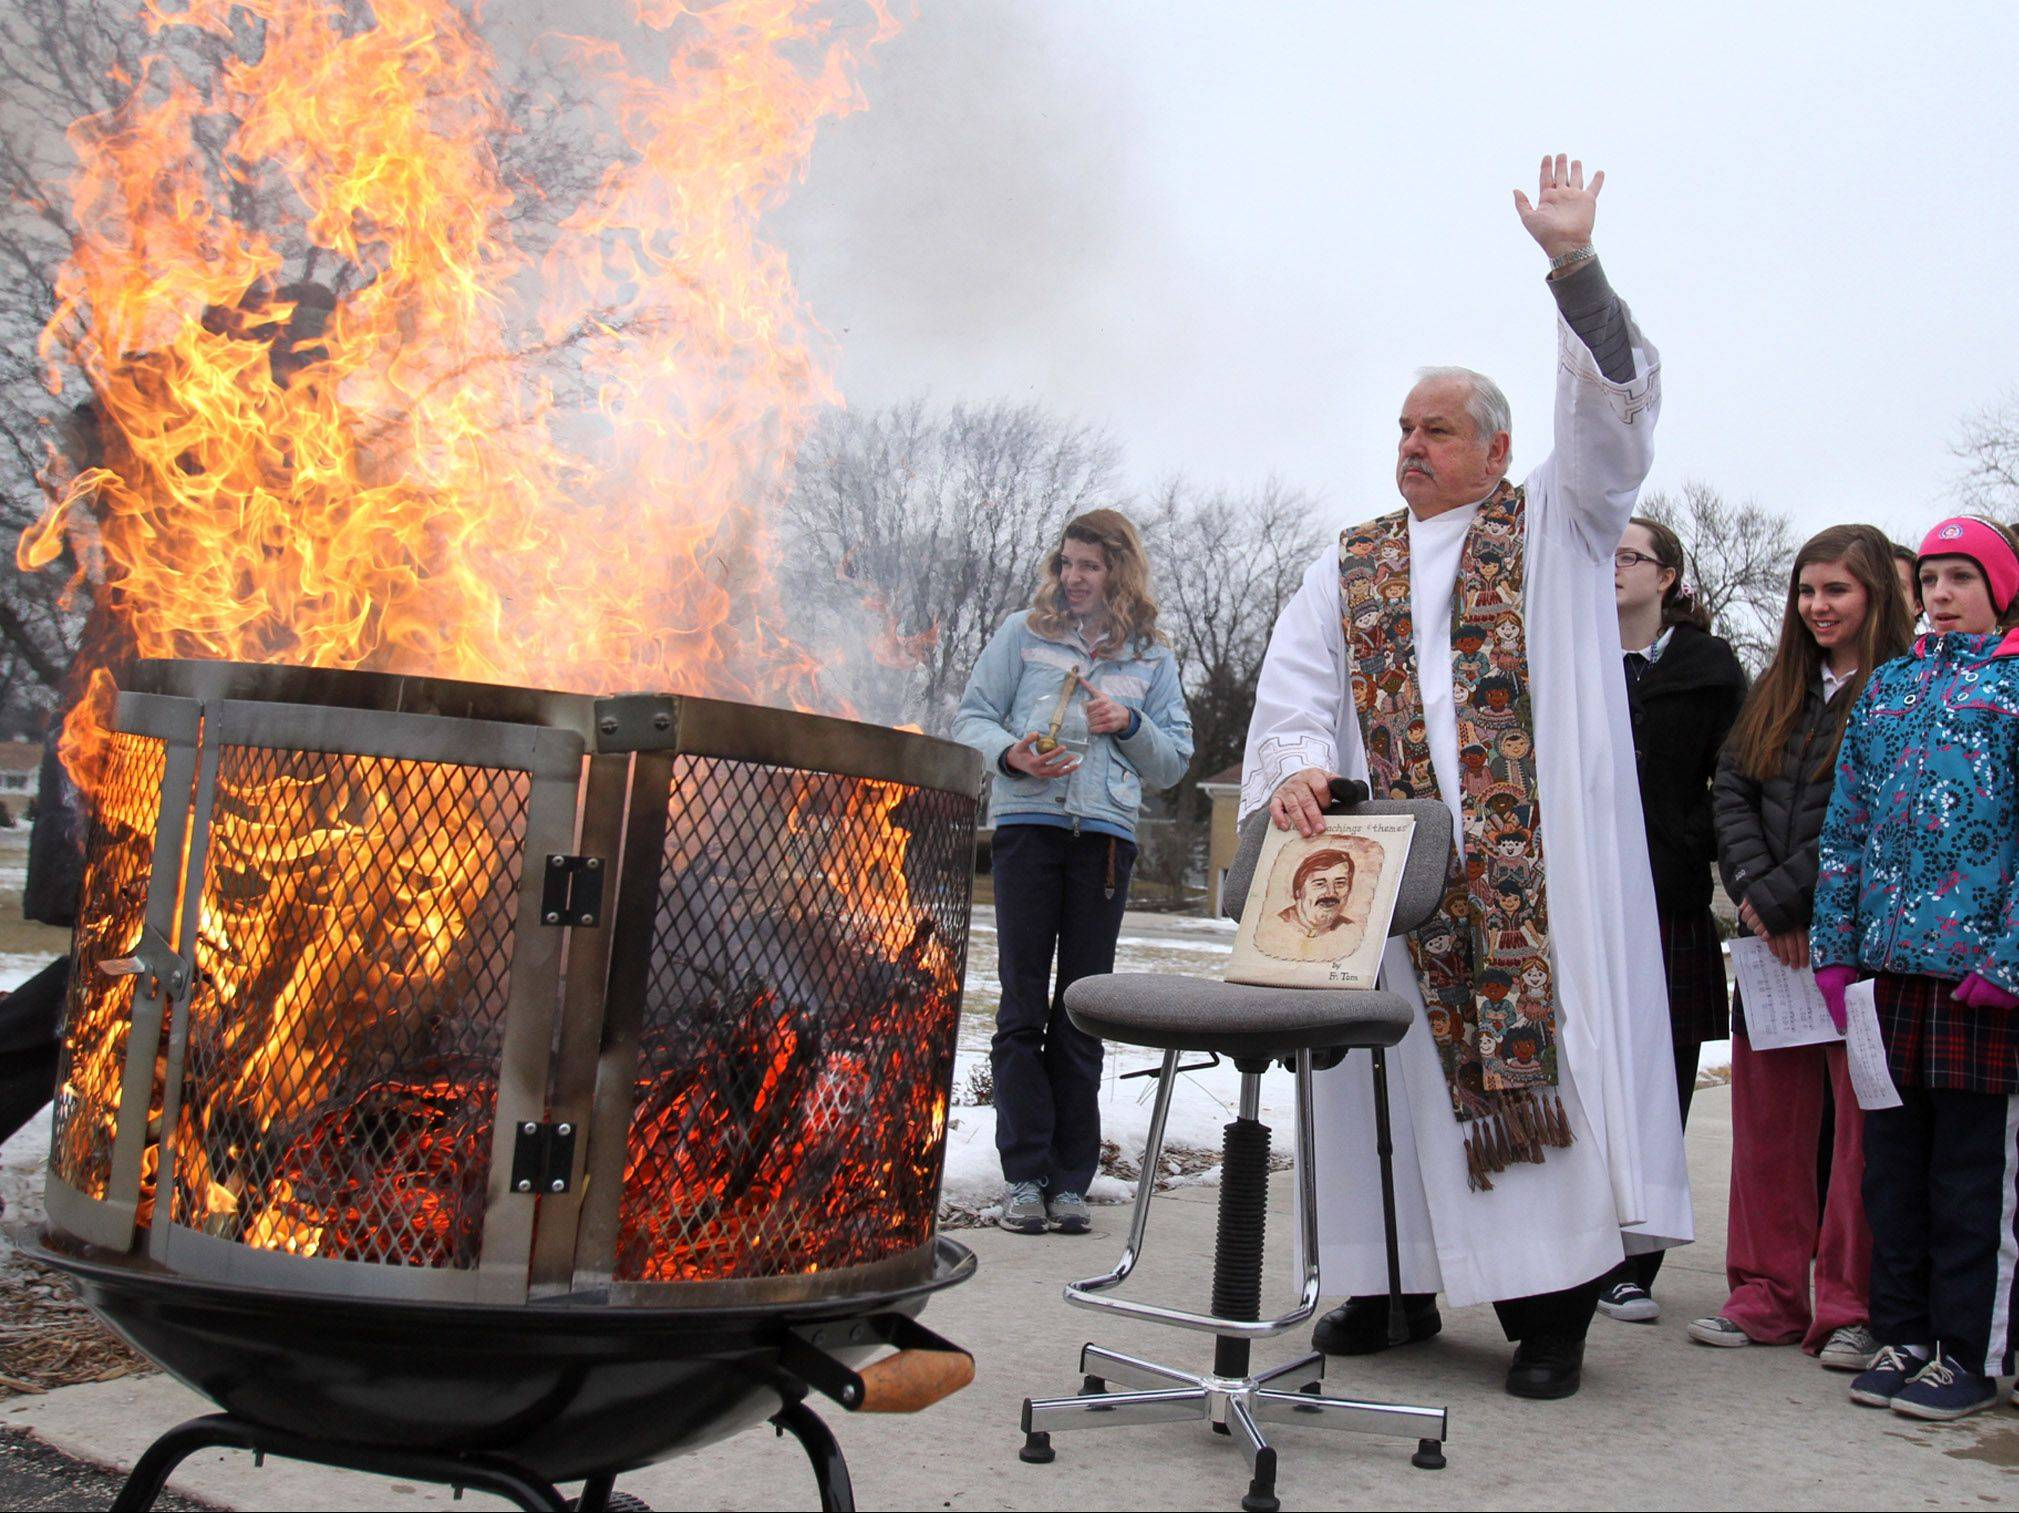 The Rev. Tom Rzepiela oversees palm burning Tuesday afternoon at St. Thomas of Villanova School in Palatine as students look on. The ashes will be used for Ash Wednesday.